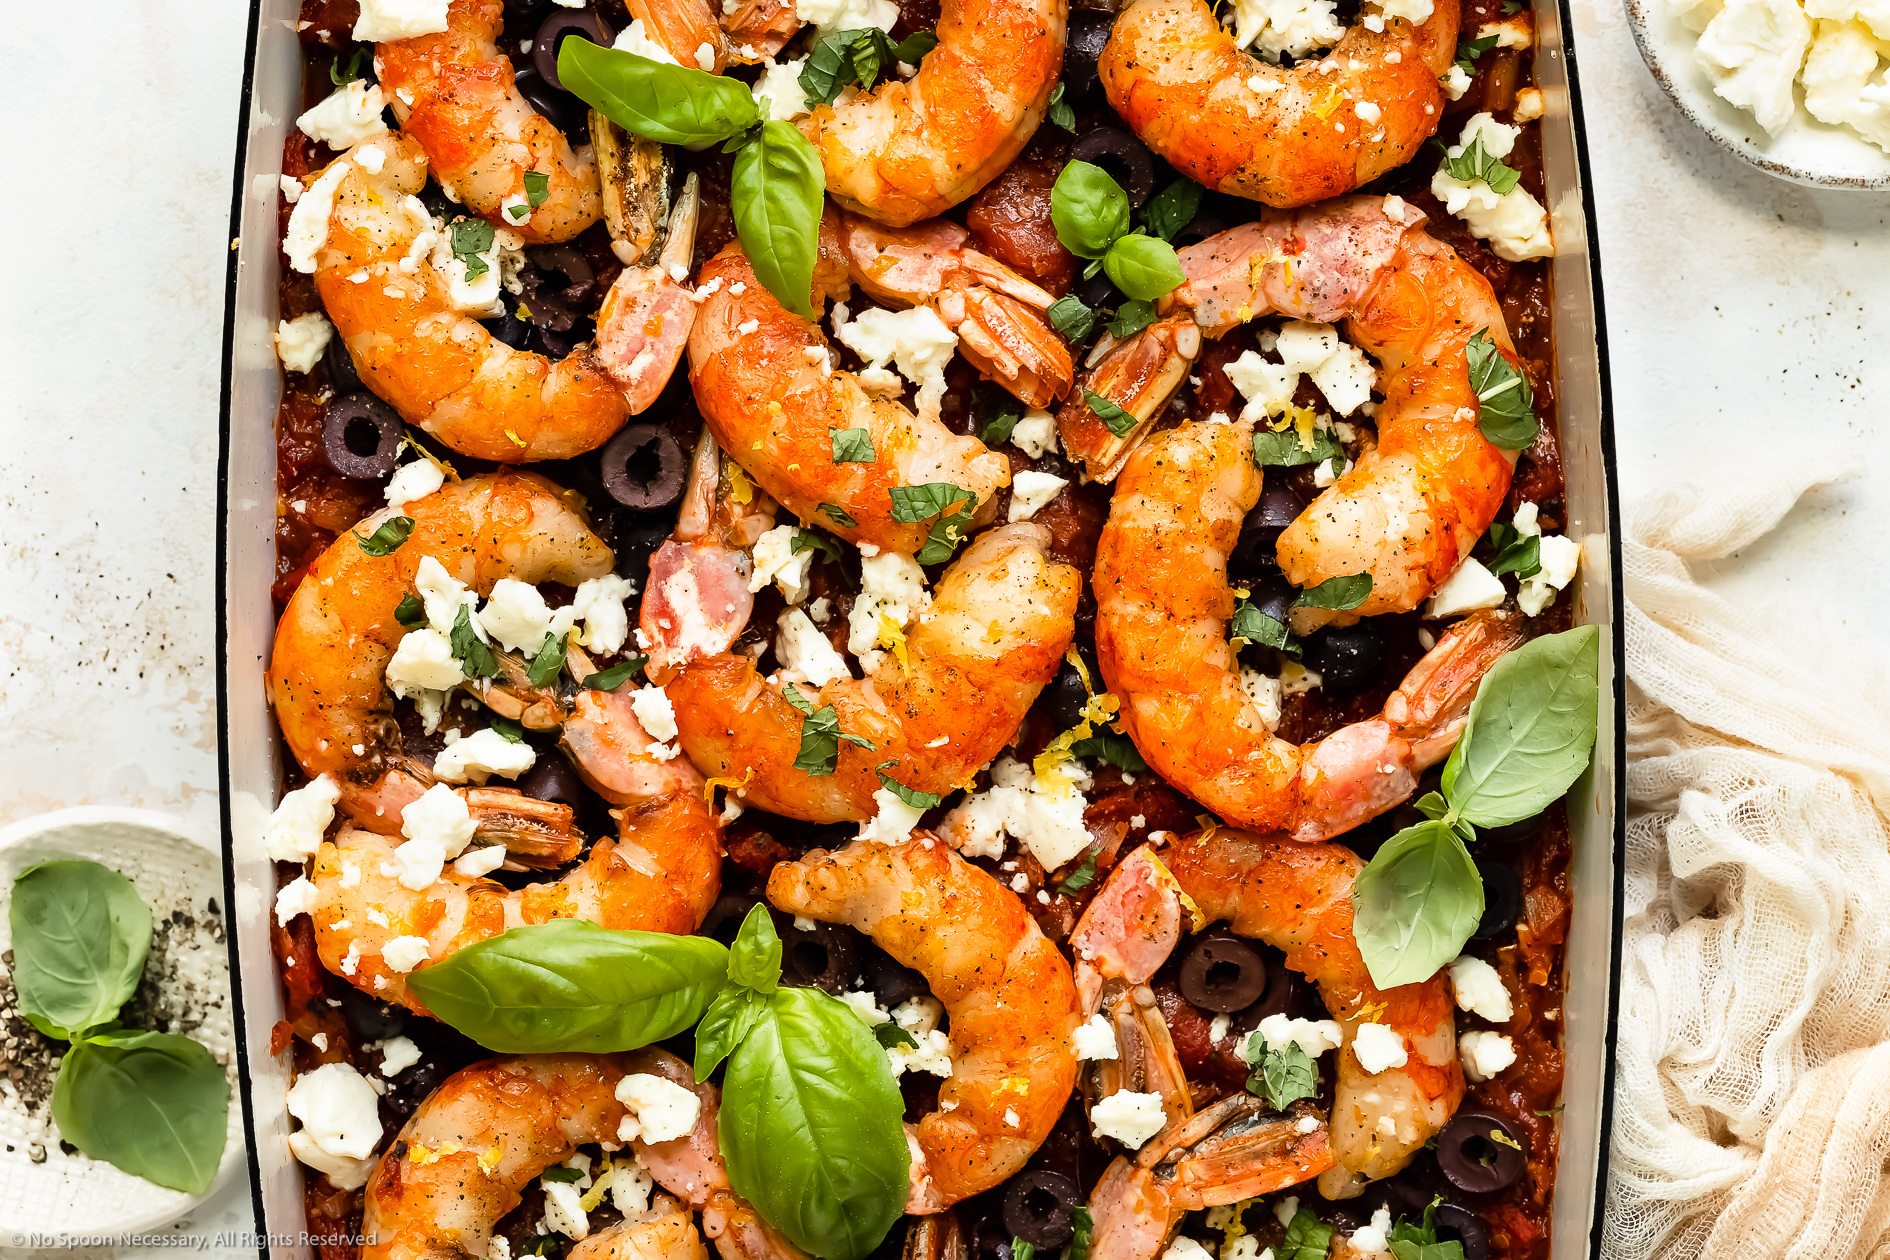 Overhead, landscape photo of baked Greek shrimp with tomatoes, olives and feta in a blue baking dish with ramekins of crumbled feta and fresh basil next to the pan.